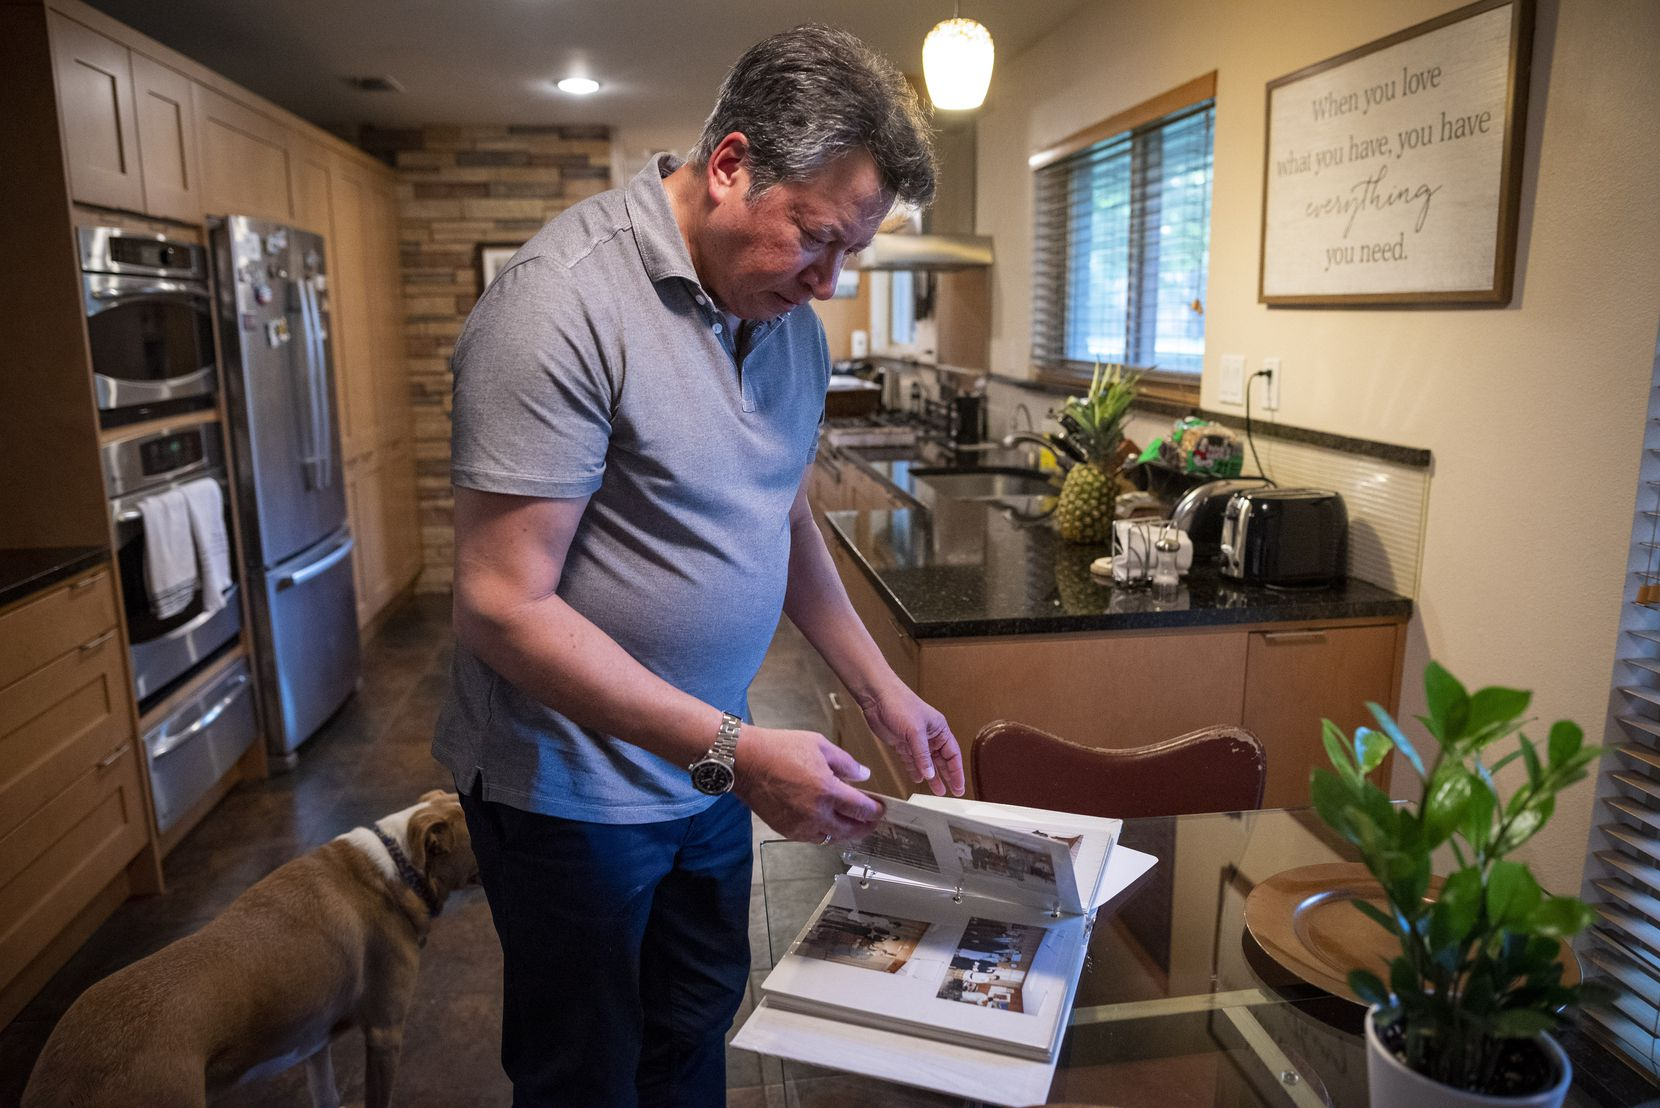 Benjamin Salazar looks through old pictures from his family's time living in New York, at his home in Dallas. Benjamin used to work for American Express at the World Trade Center Plaza in New York City.